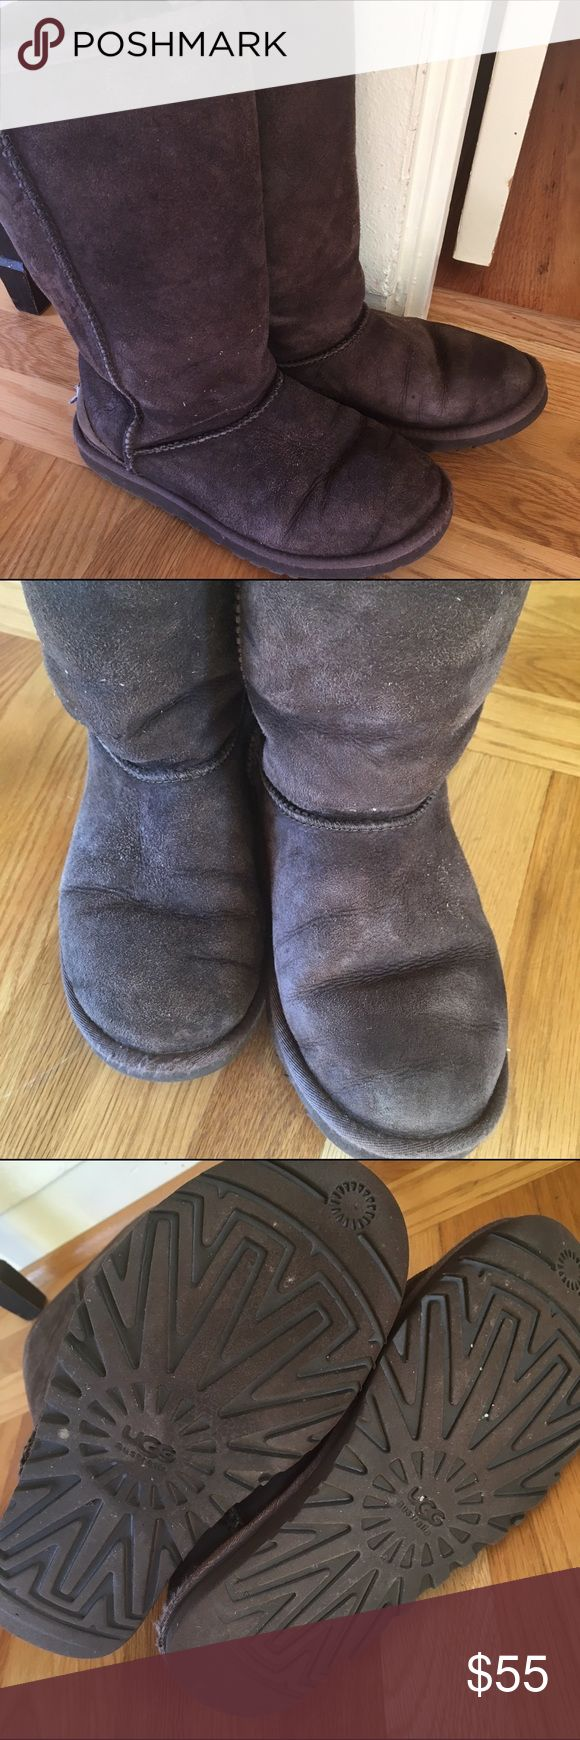 CLEARANCE!! Classic Uggs In used condition but still so much life left. The soles have over 75% tread left. These did great in the snow! They are men's size 5 which is a women's size 7/7.5. (I am a 7/7.5 and these fit great even with thick socks.) UGG Shoes Winter & Rain Boots